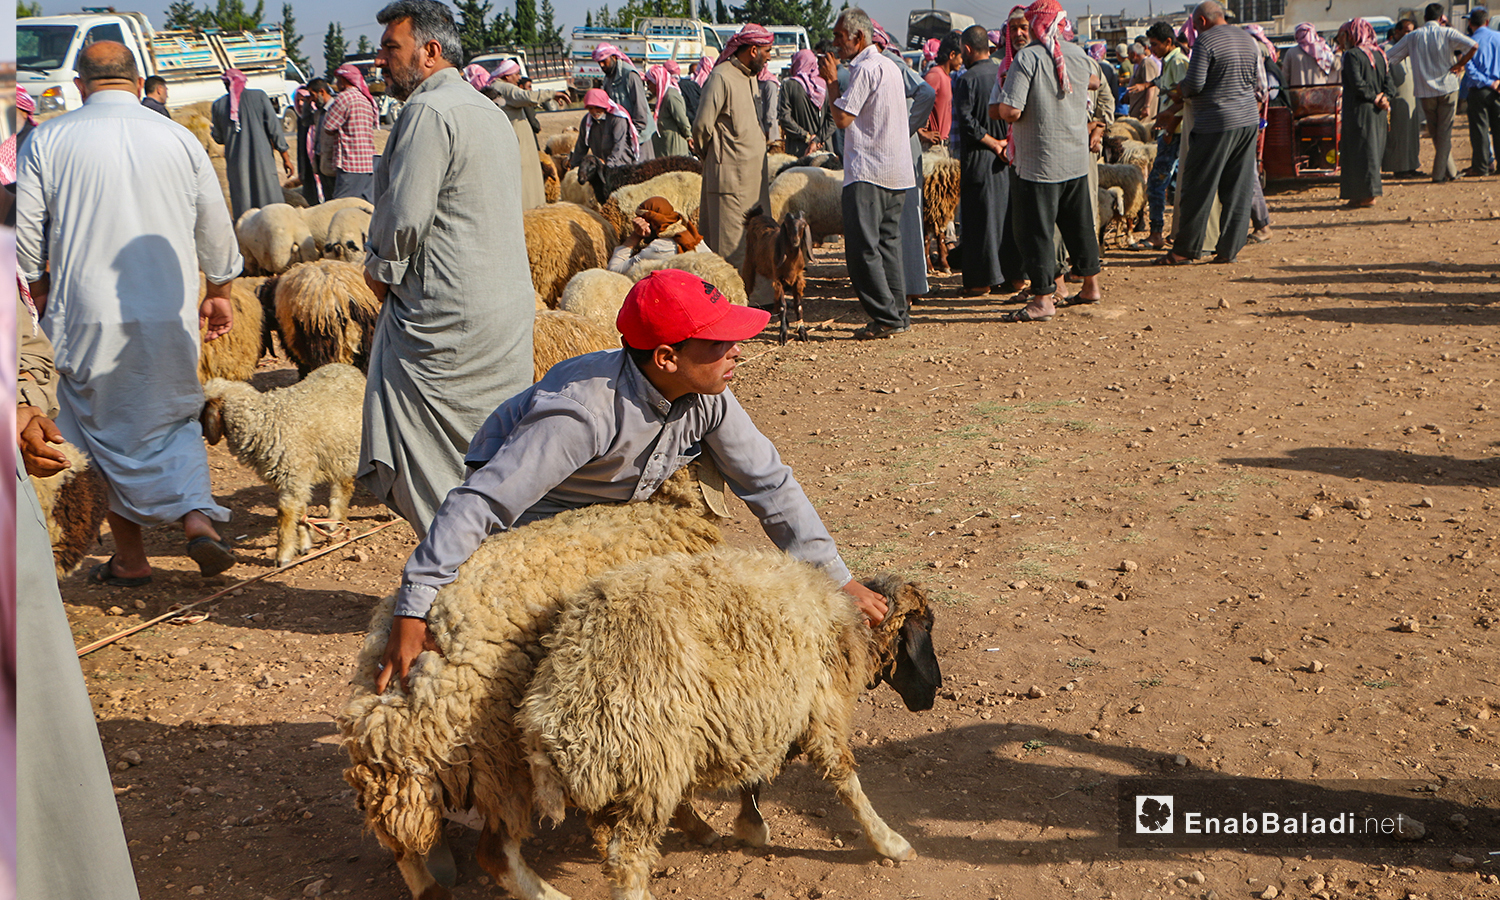 Sheep offered for sale in Arshaf town's market in northern Aleppo countryside – 27 July 2020 (Enab Baladi / Abdul Salam Majan)